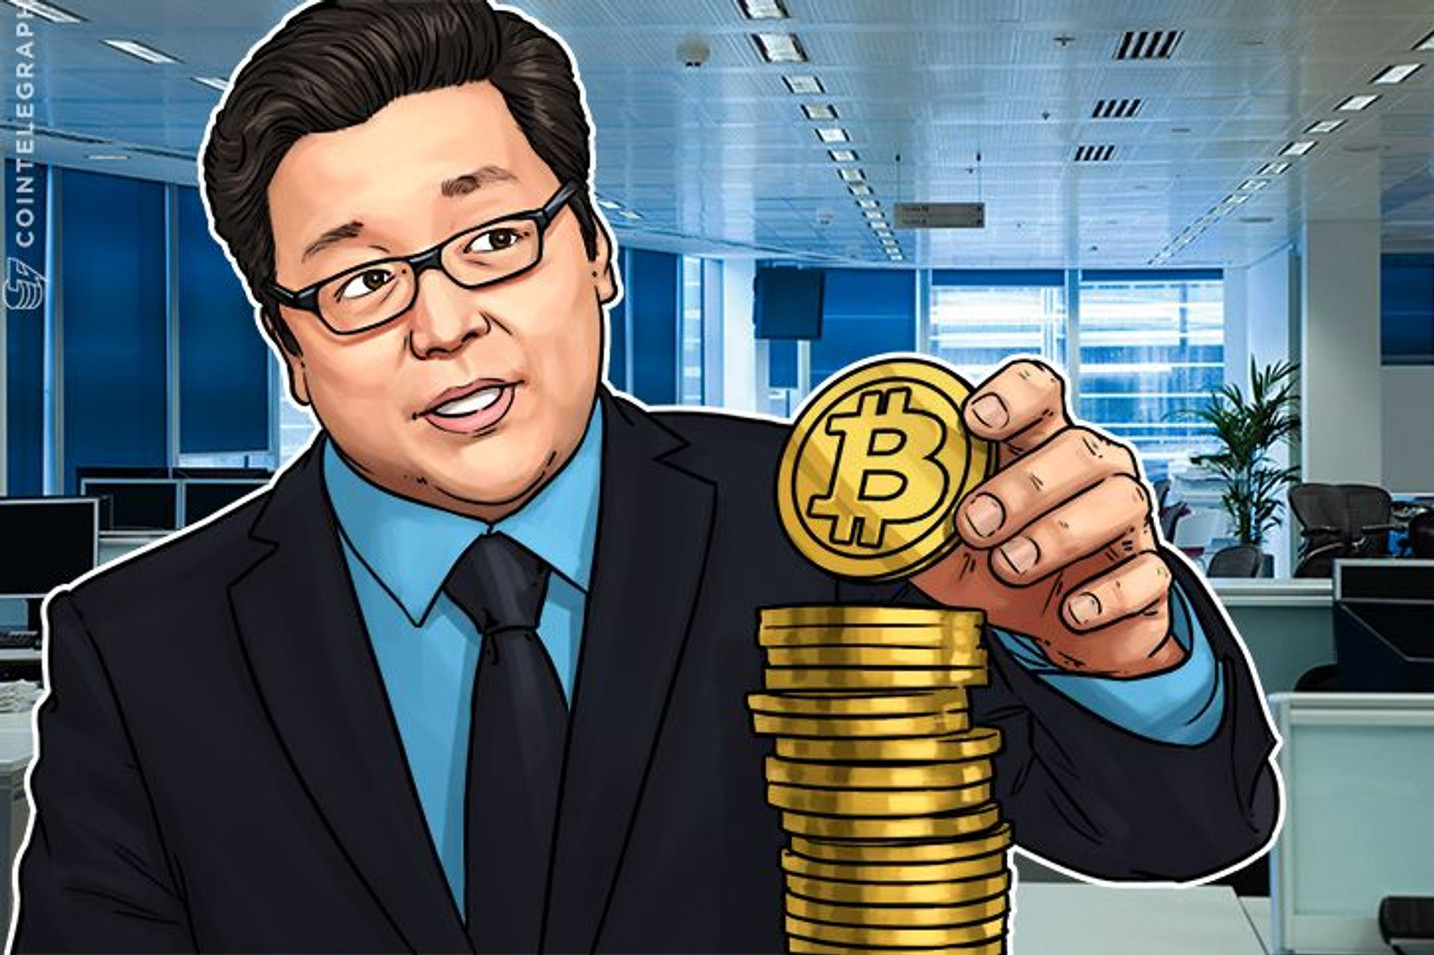 Fundstrat's Tom Lee Stays Bullish On BTC Price, Sees Major Firms Joining Crypto Sphere